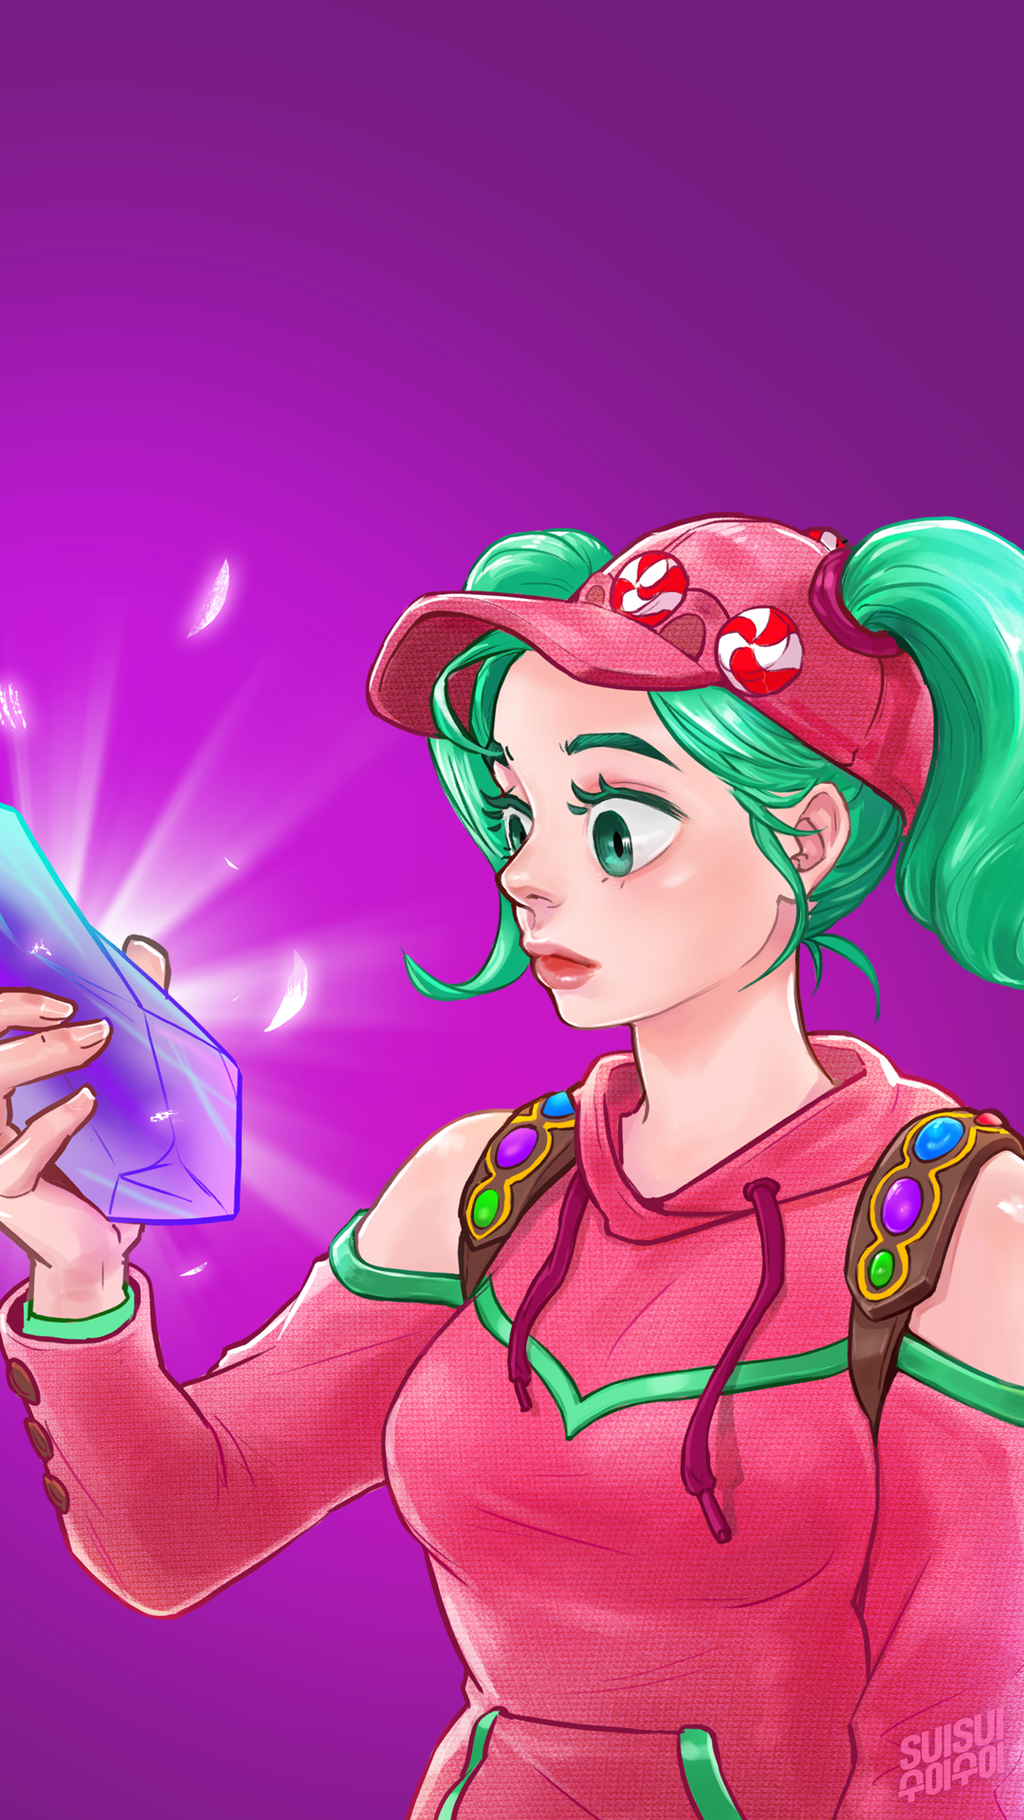 Fortnite Zoey By Hey-Suisui On Deviantart-2043